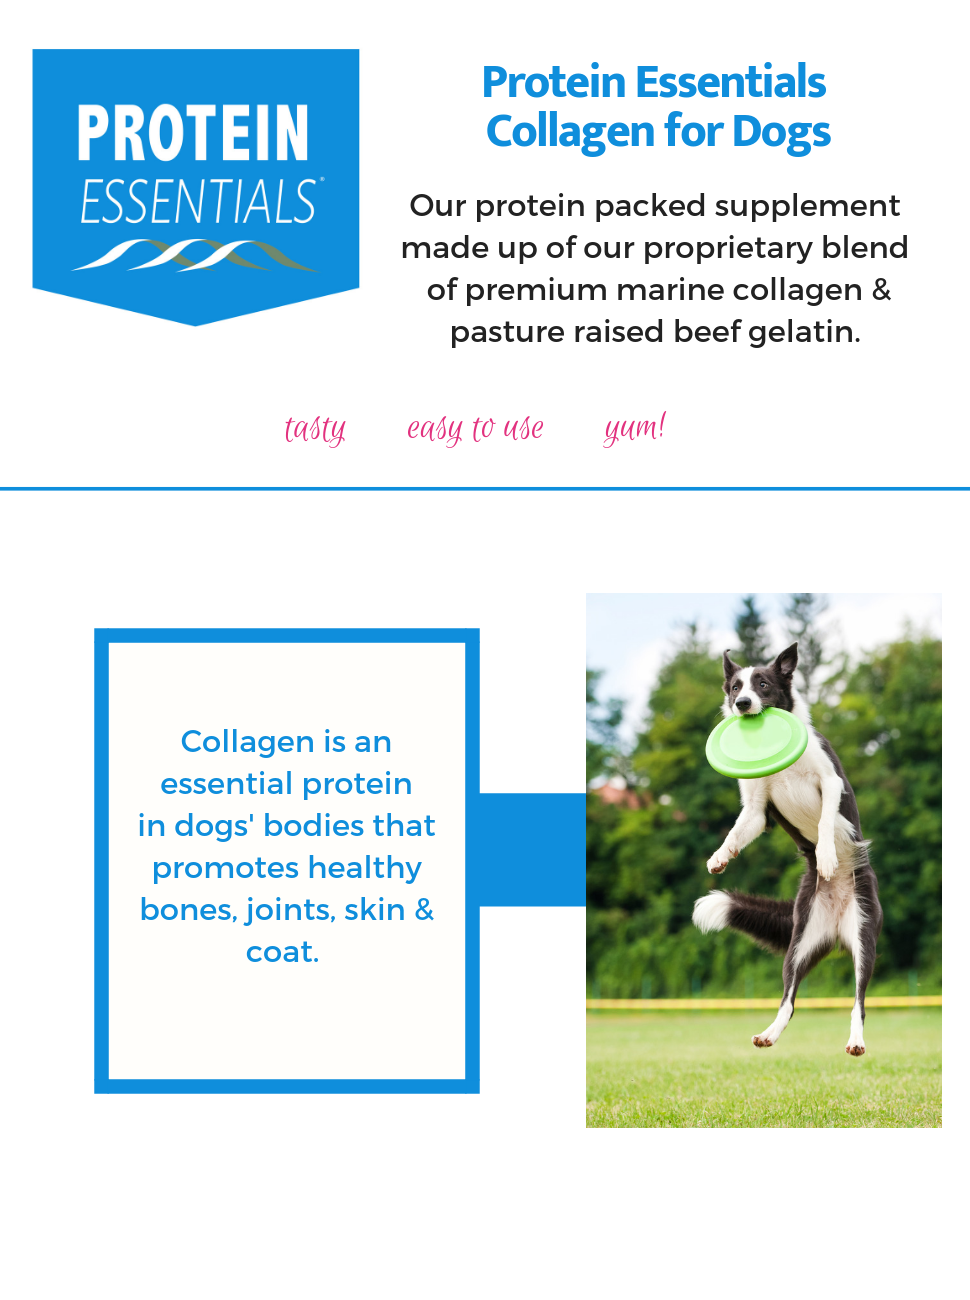 Protein Essentials Collagen for Dogs